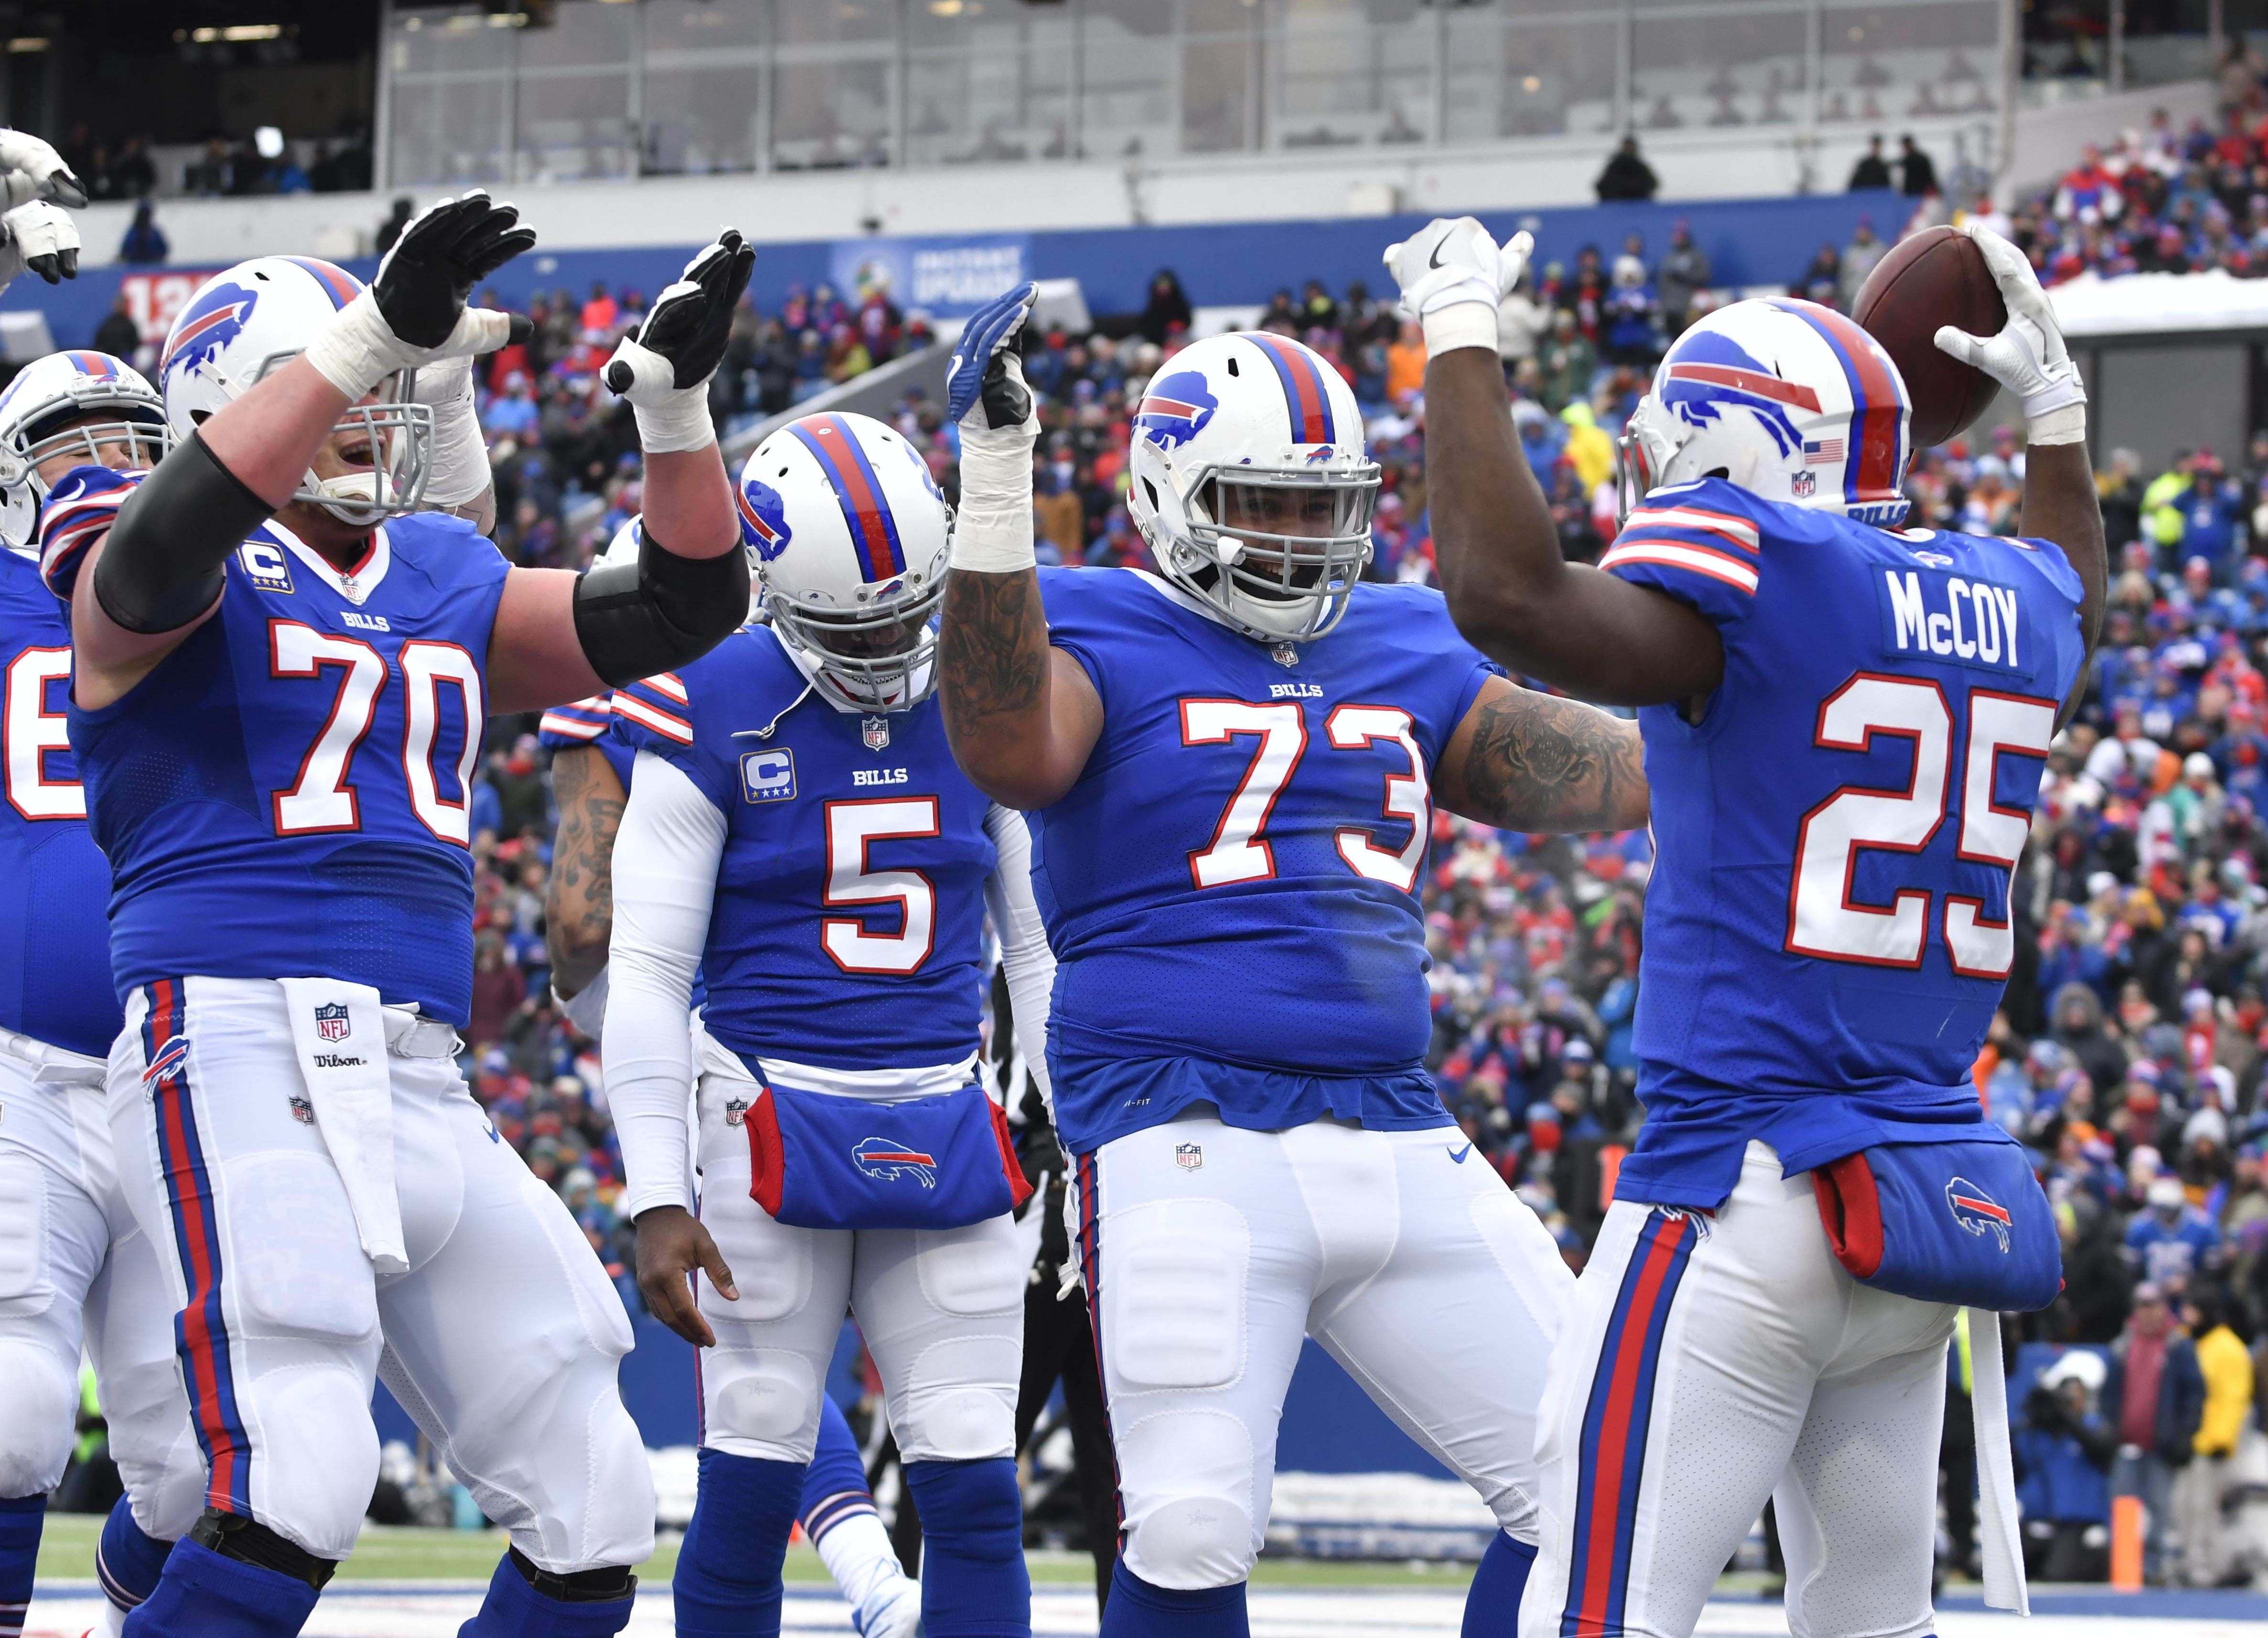 Bills - Jaguars PLAYOFFS predictions featuring @mack10zie, @mmigliore, @husaria, @evancdent and @rcanepac!